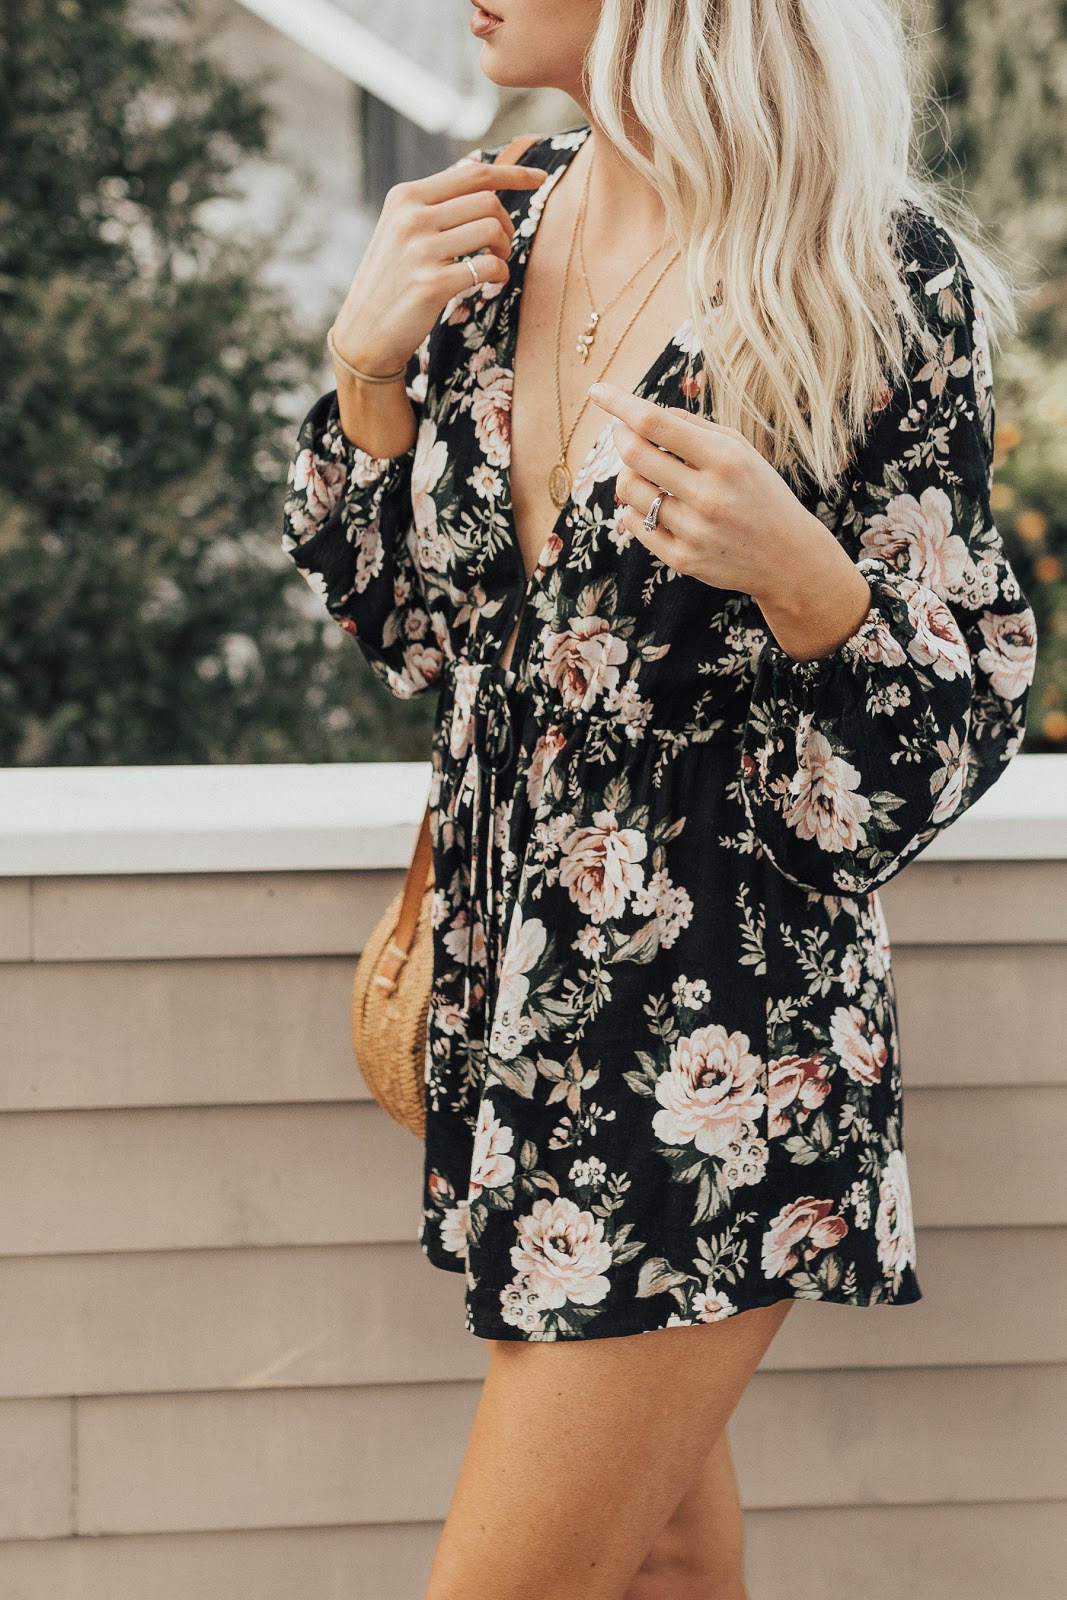 deep v romper with layered necklaces | Love, Lenore